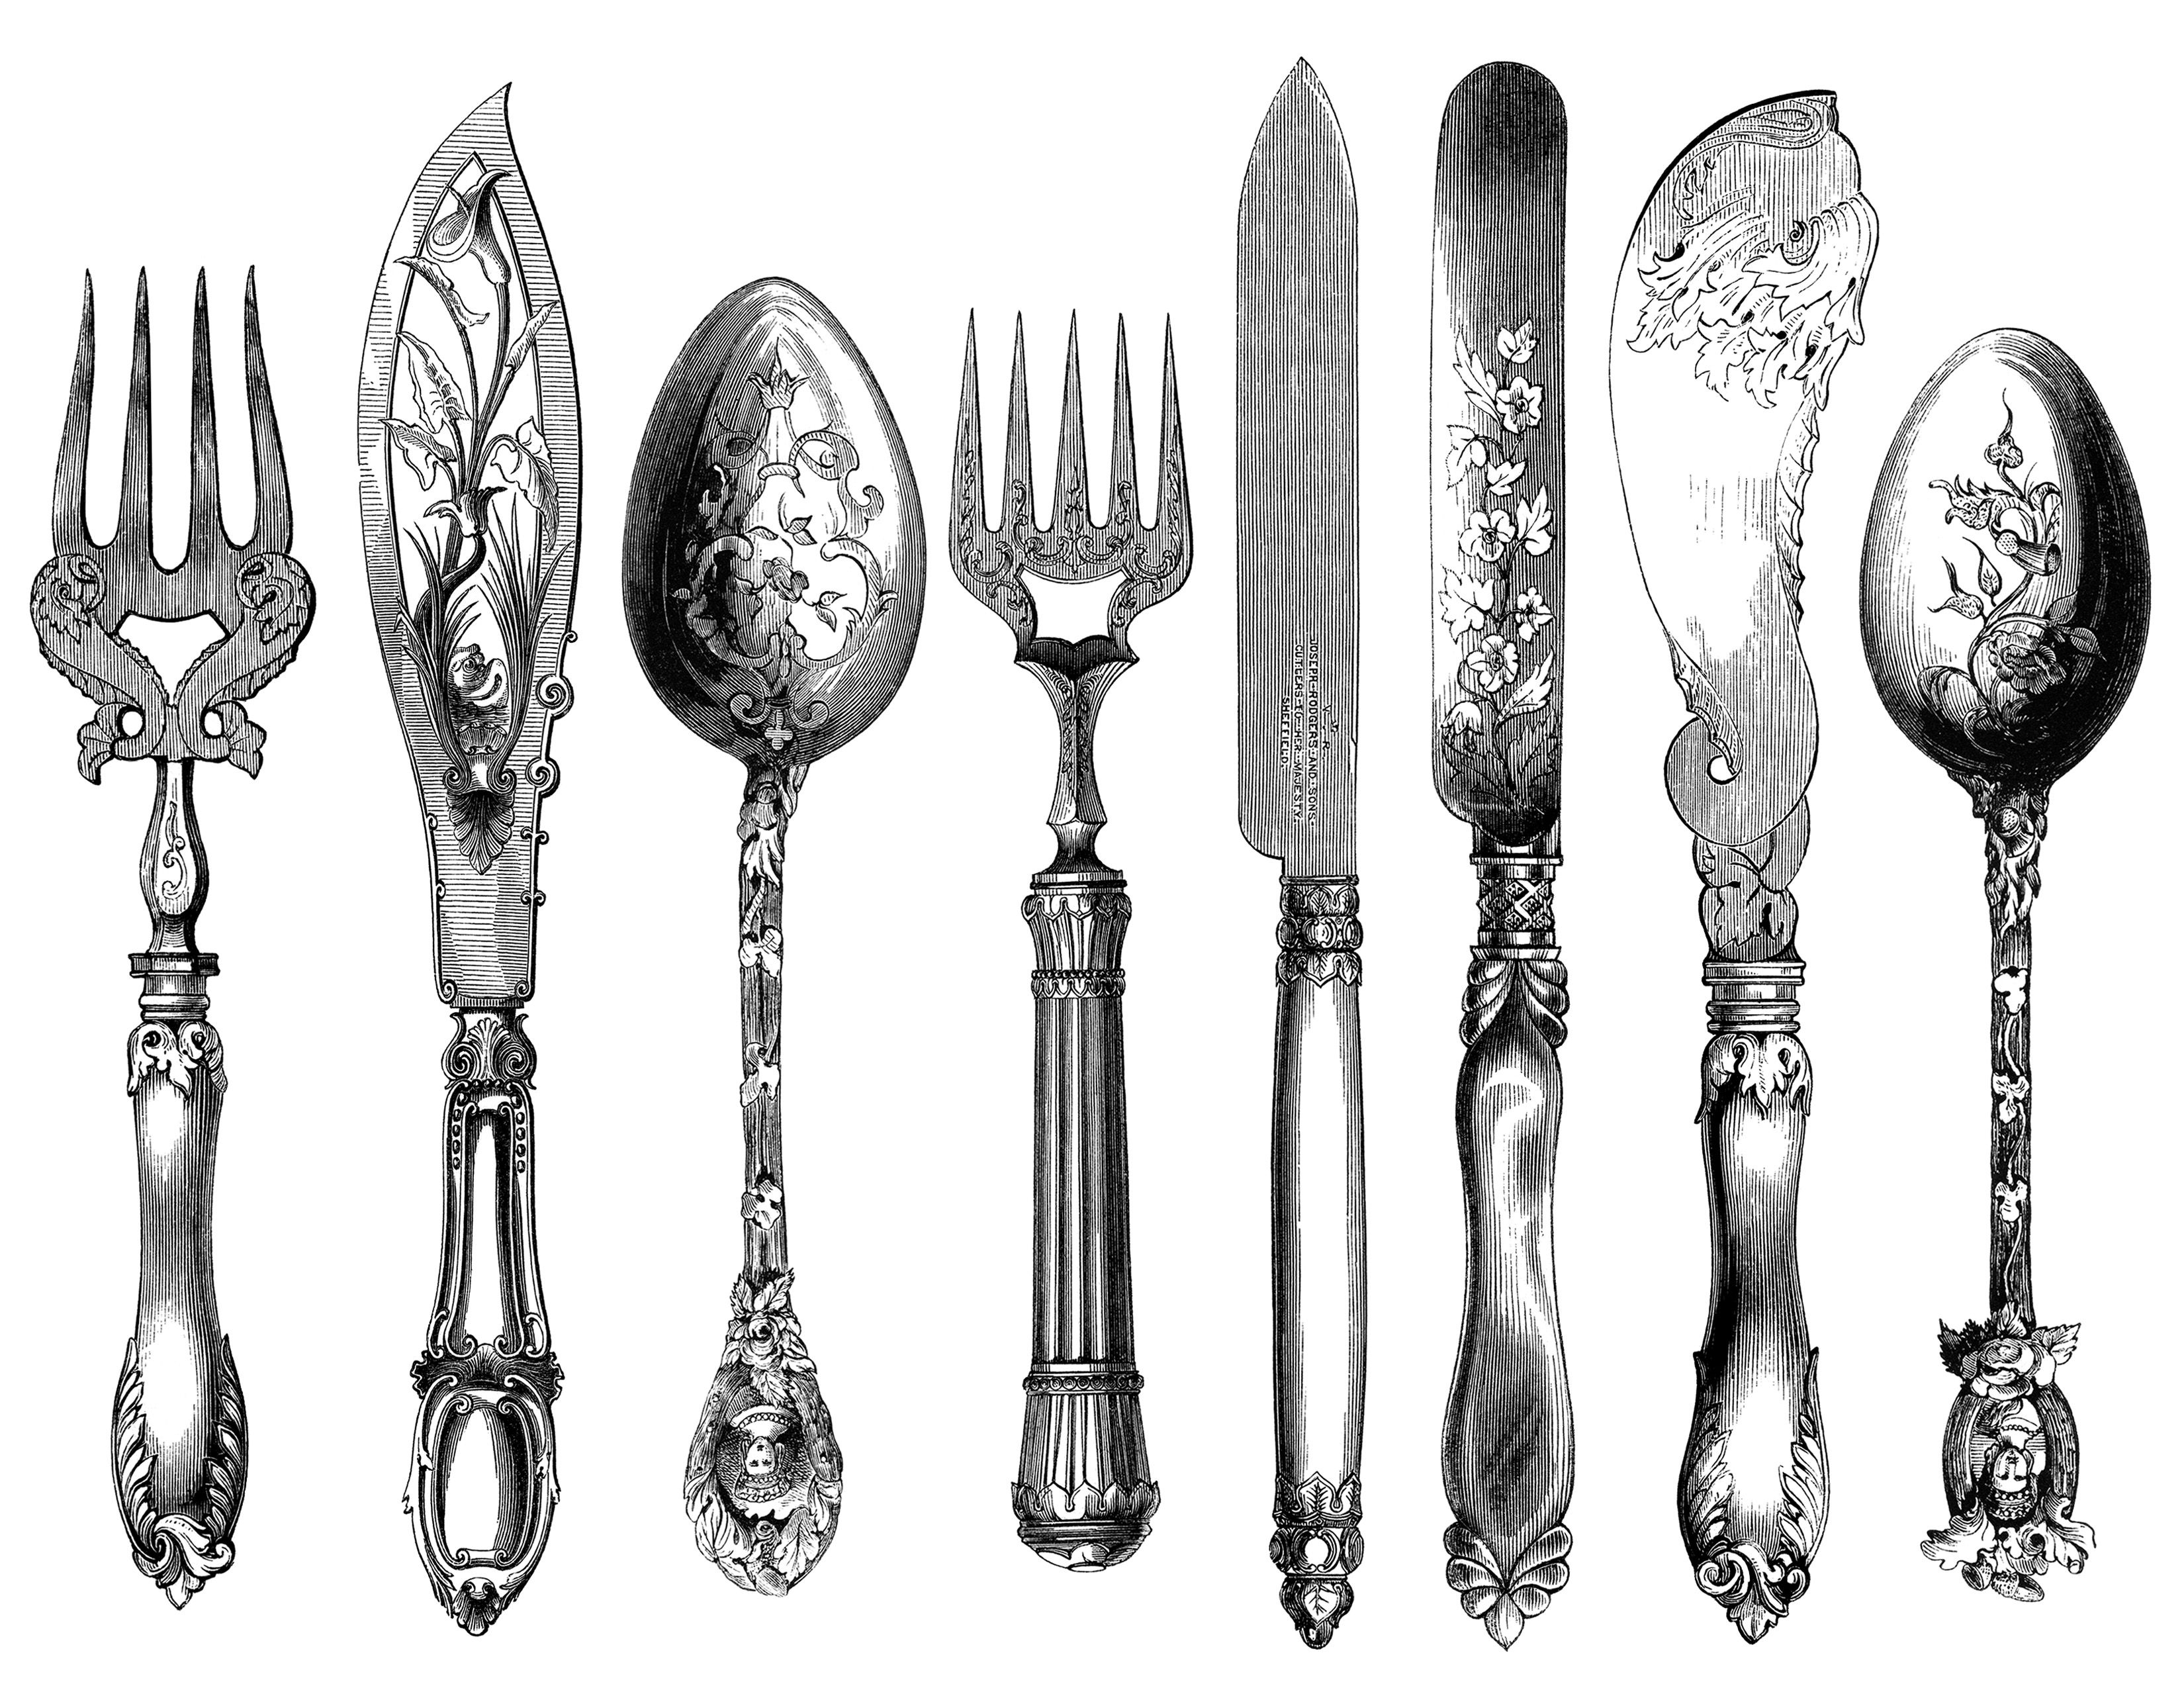 Vintage Cutlery Clipart Cutlery Engraving Fork Knife